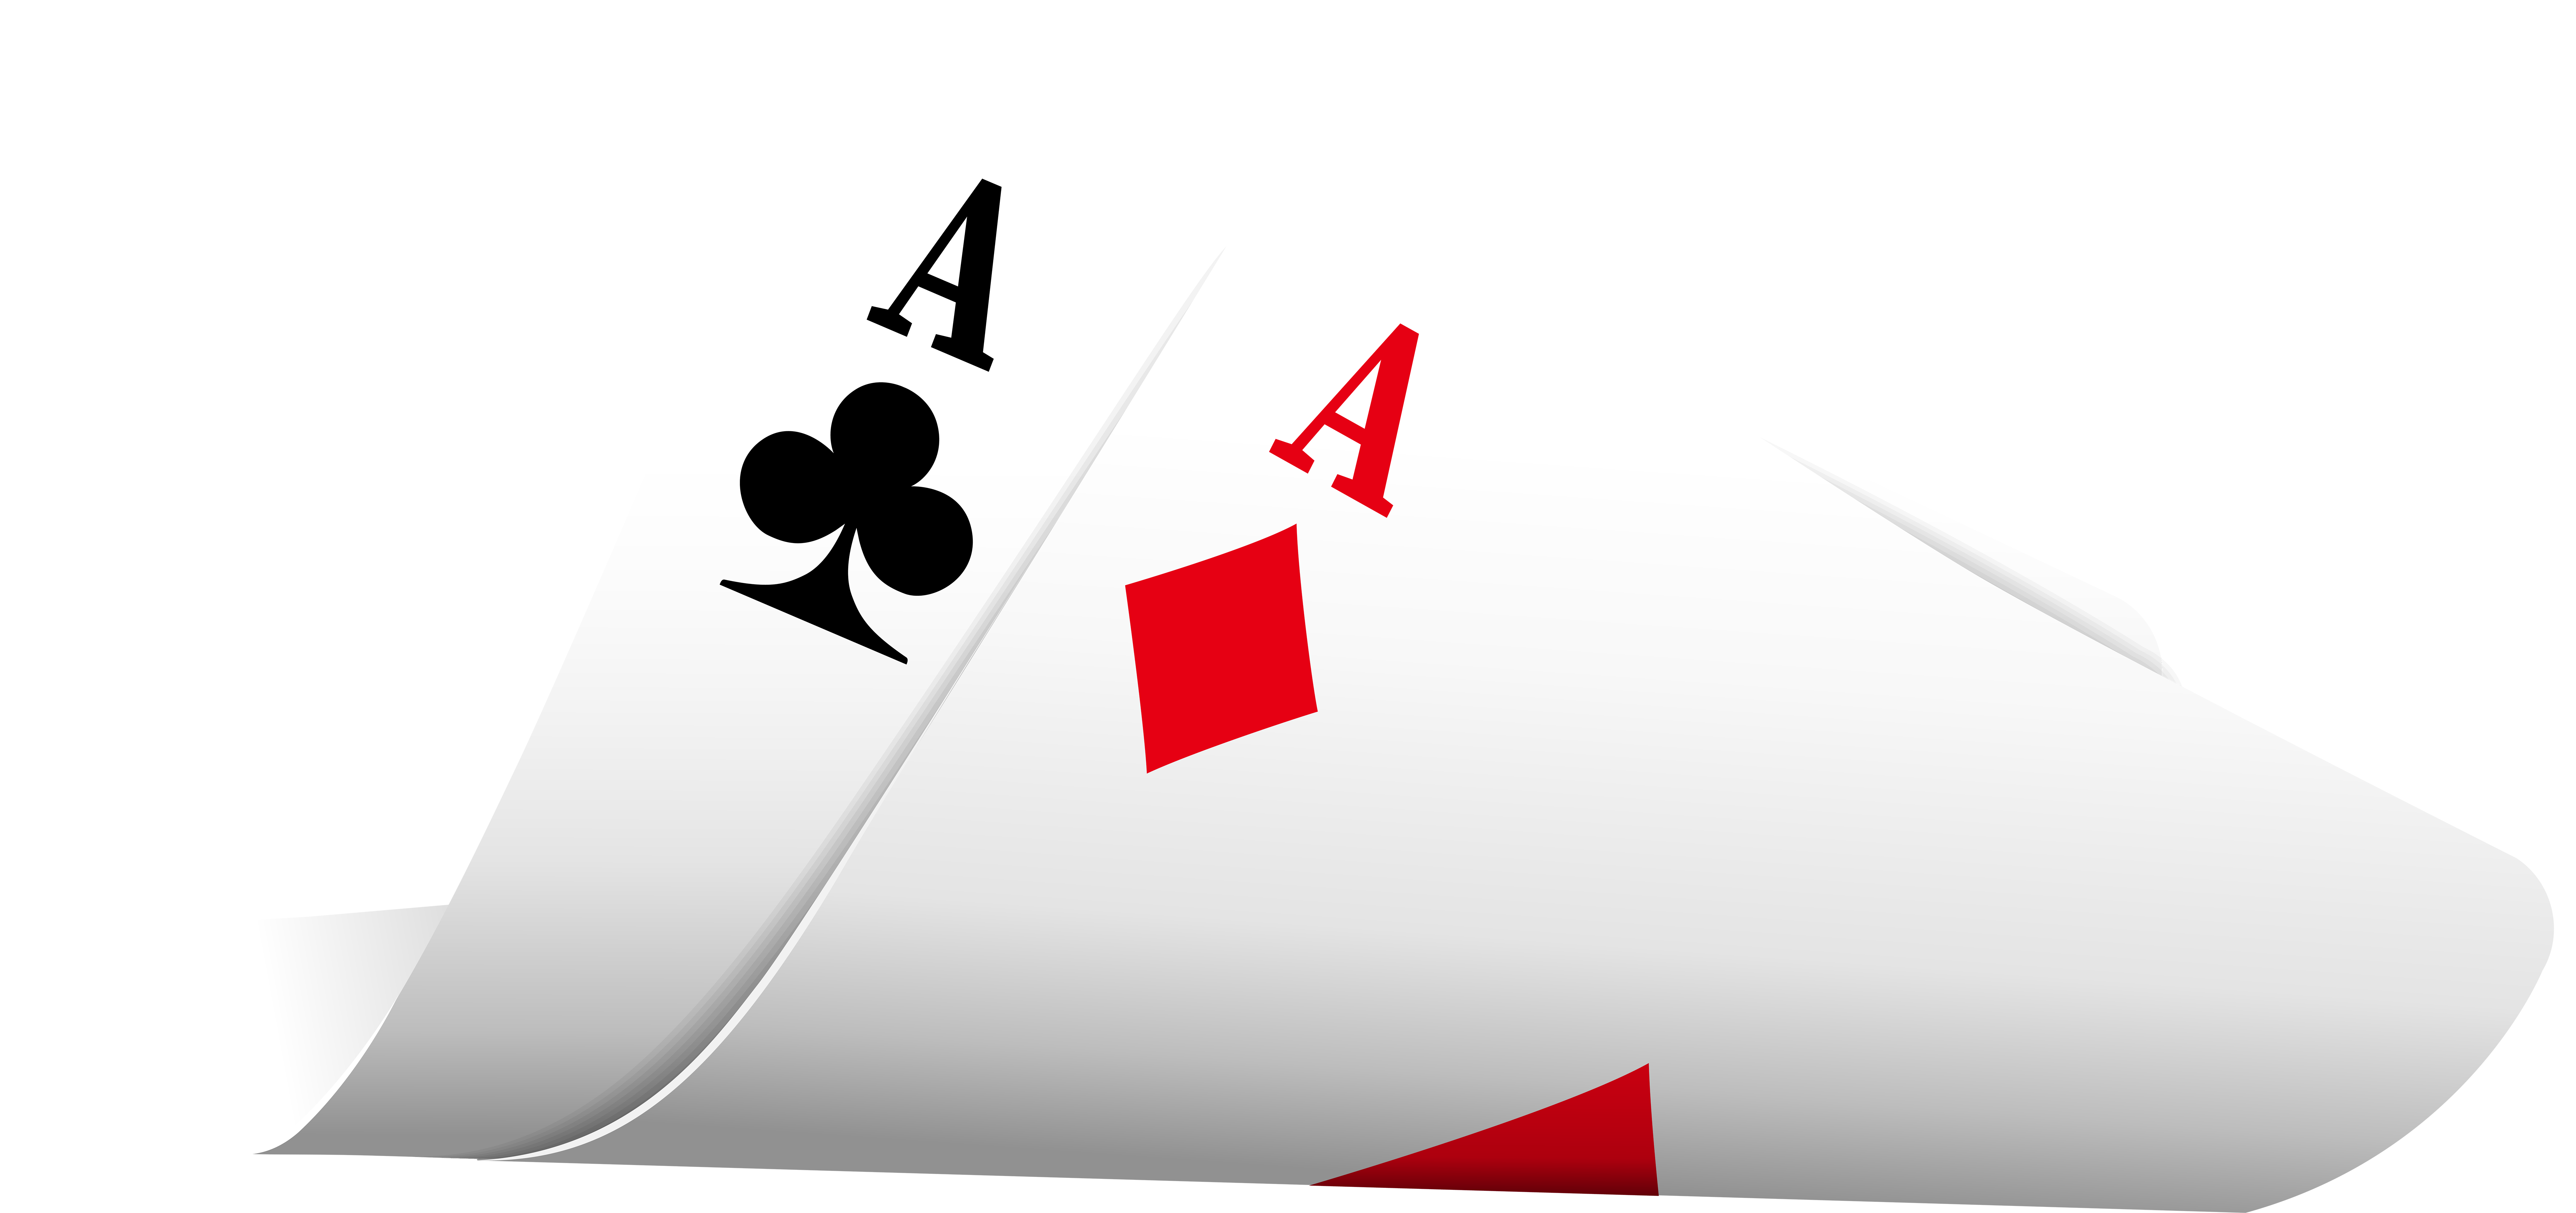 Aces clipart graphic library library Aces Cards PNG Clip Art - Best WEB Clipart graphic library library